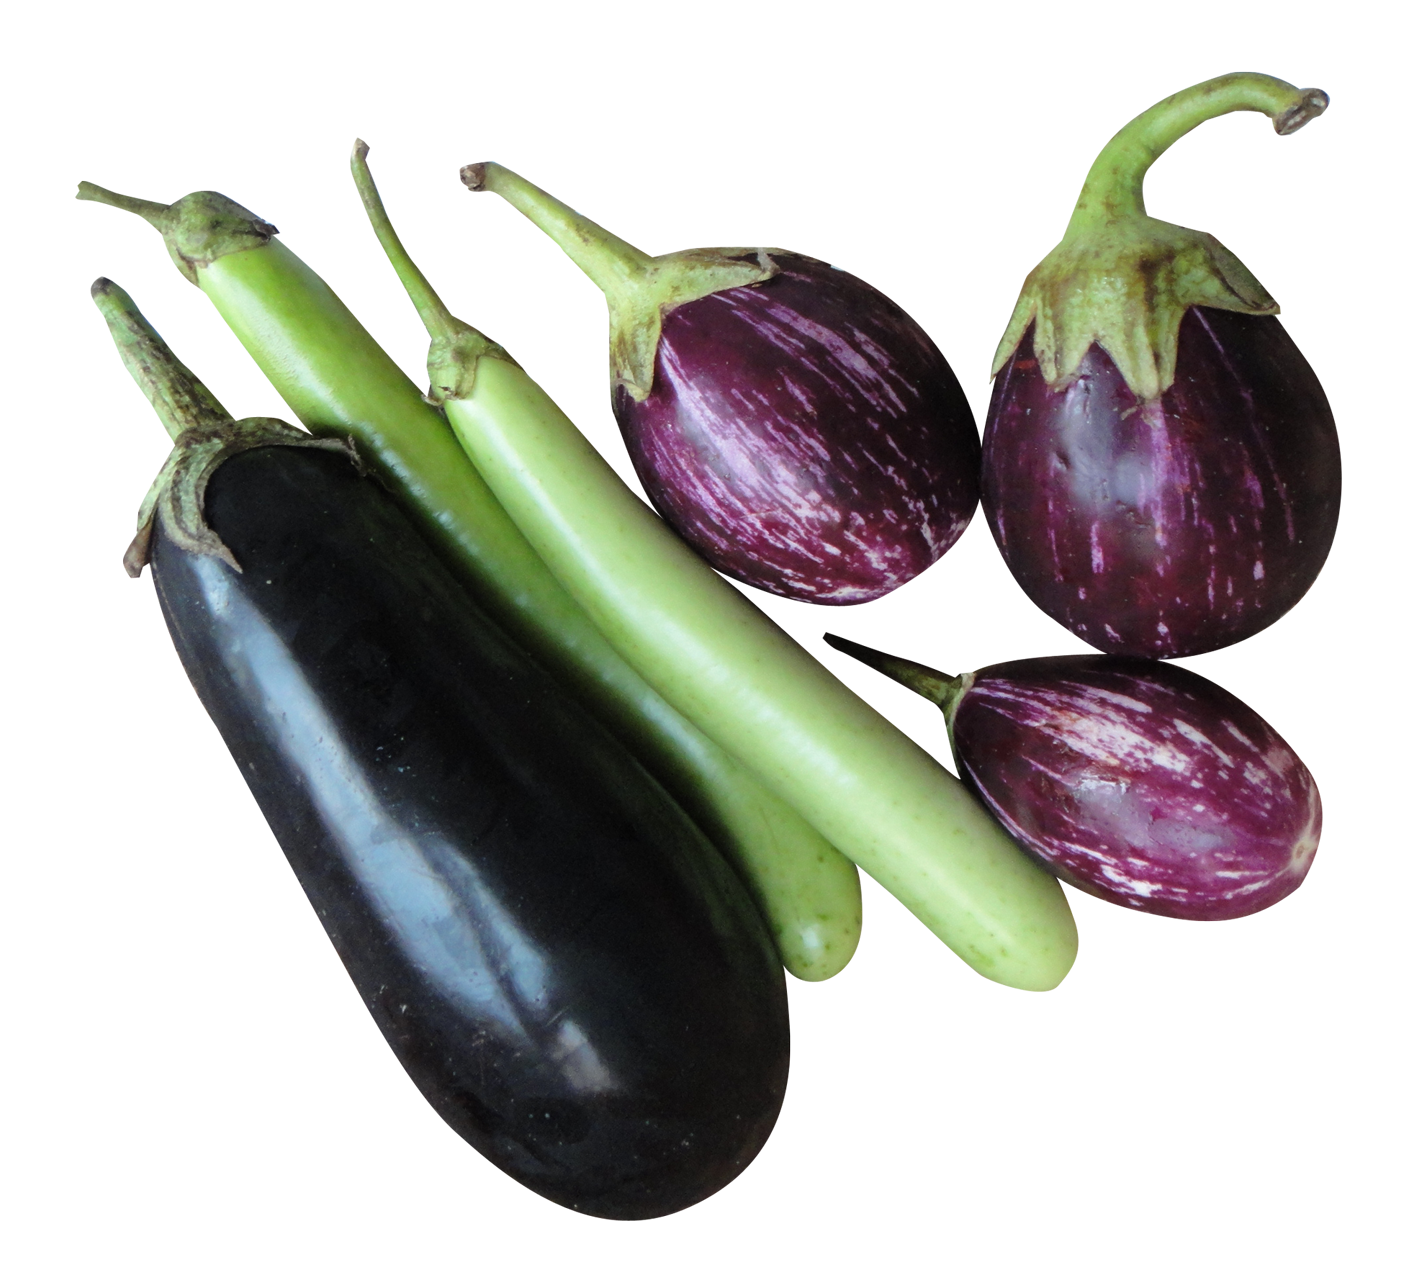 Eggplant transparent background. Hd png free icons